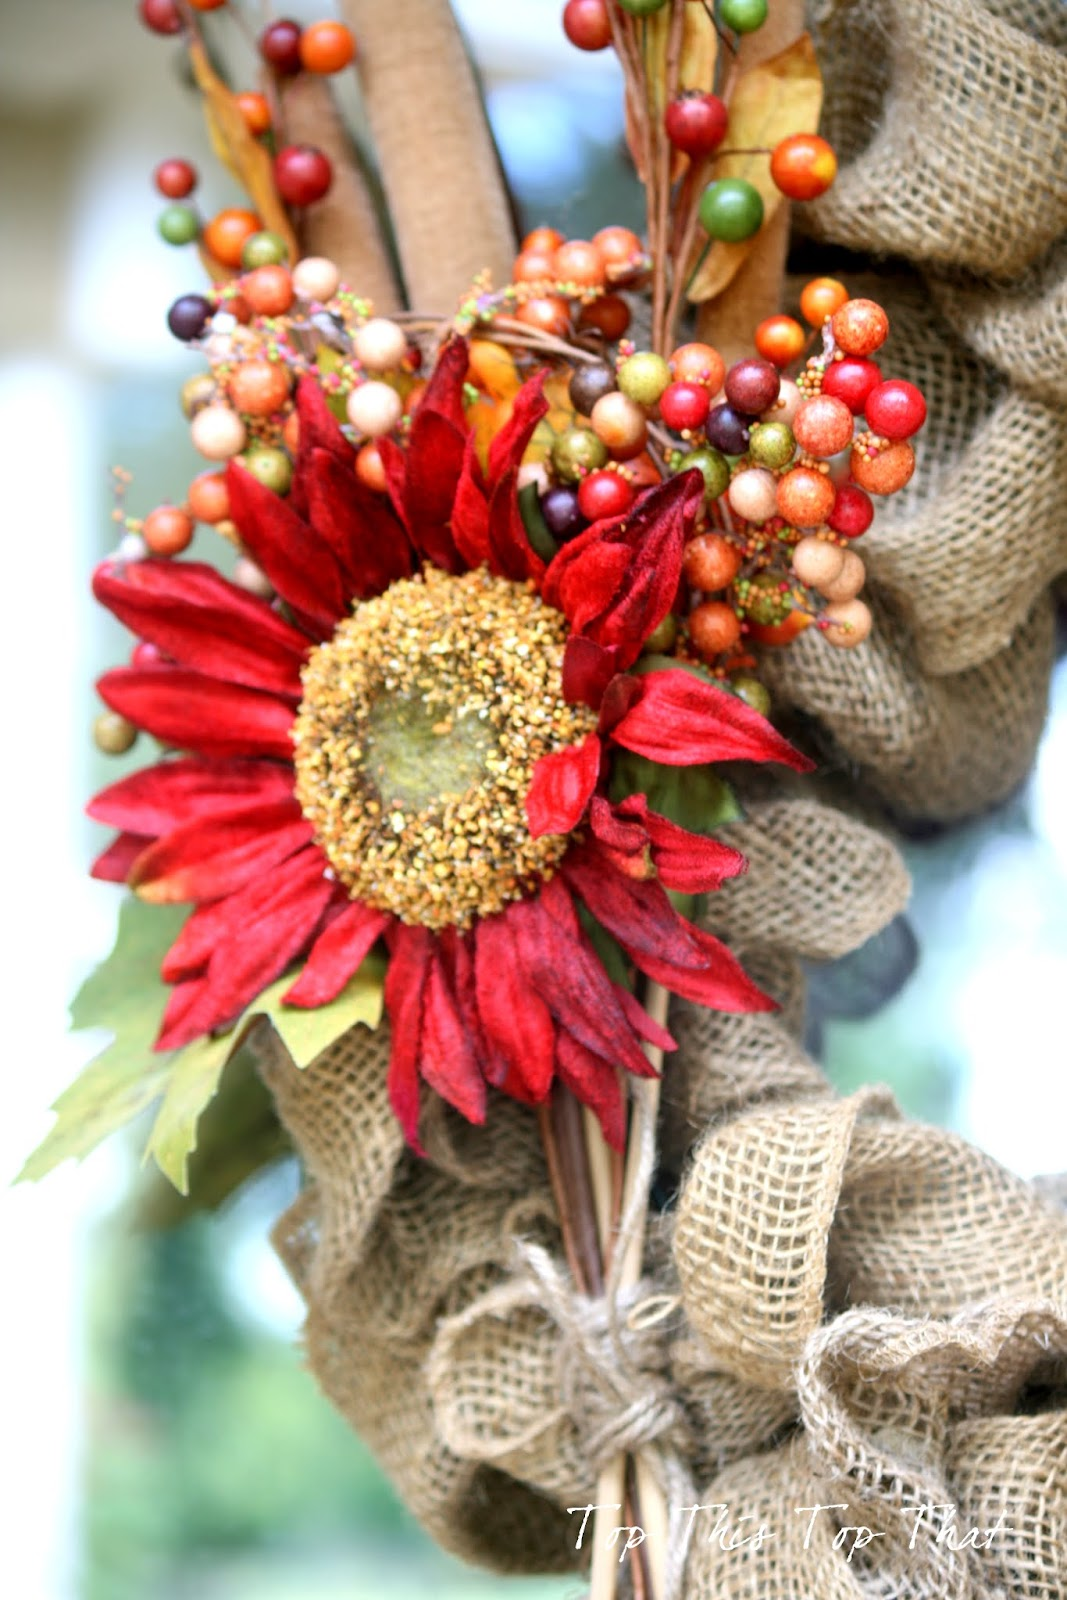 The easiest fall burlap wreath tutorial christmas decorations ideas 2016 - Fall natural decor ideas rich colors ...